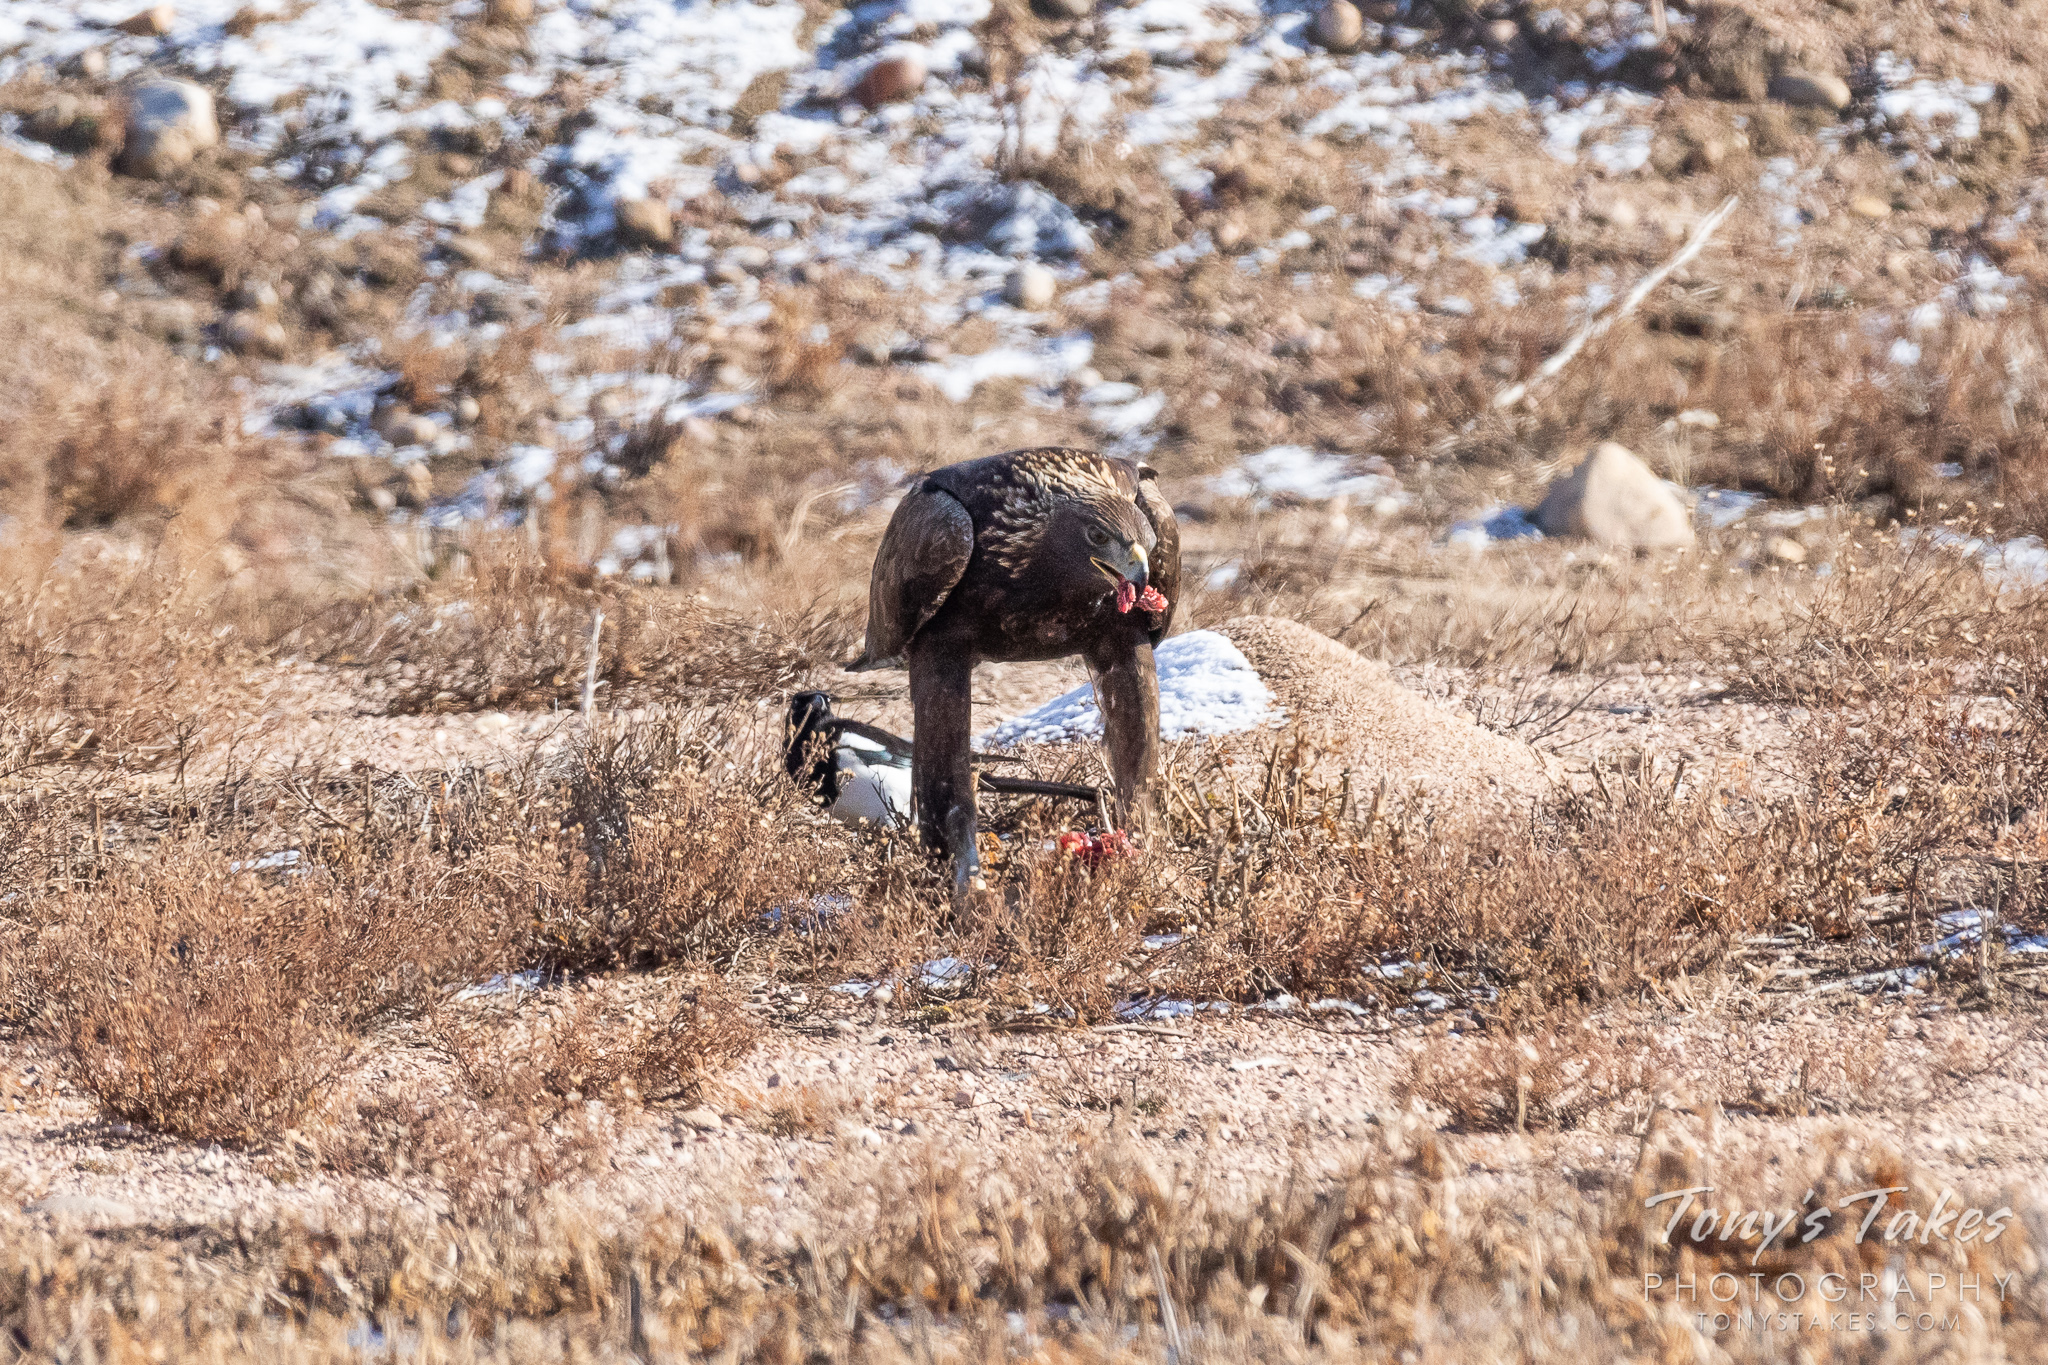 A Golden Eagle keeps watch on its meal while Magpies hope for leftovers. (© Tony's Takes)